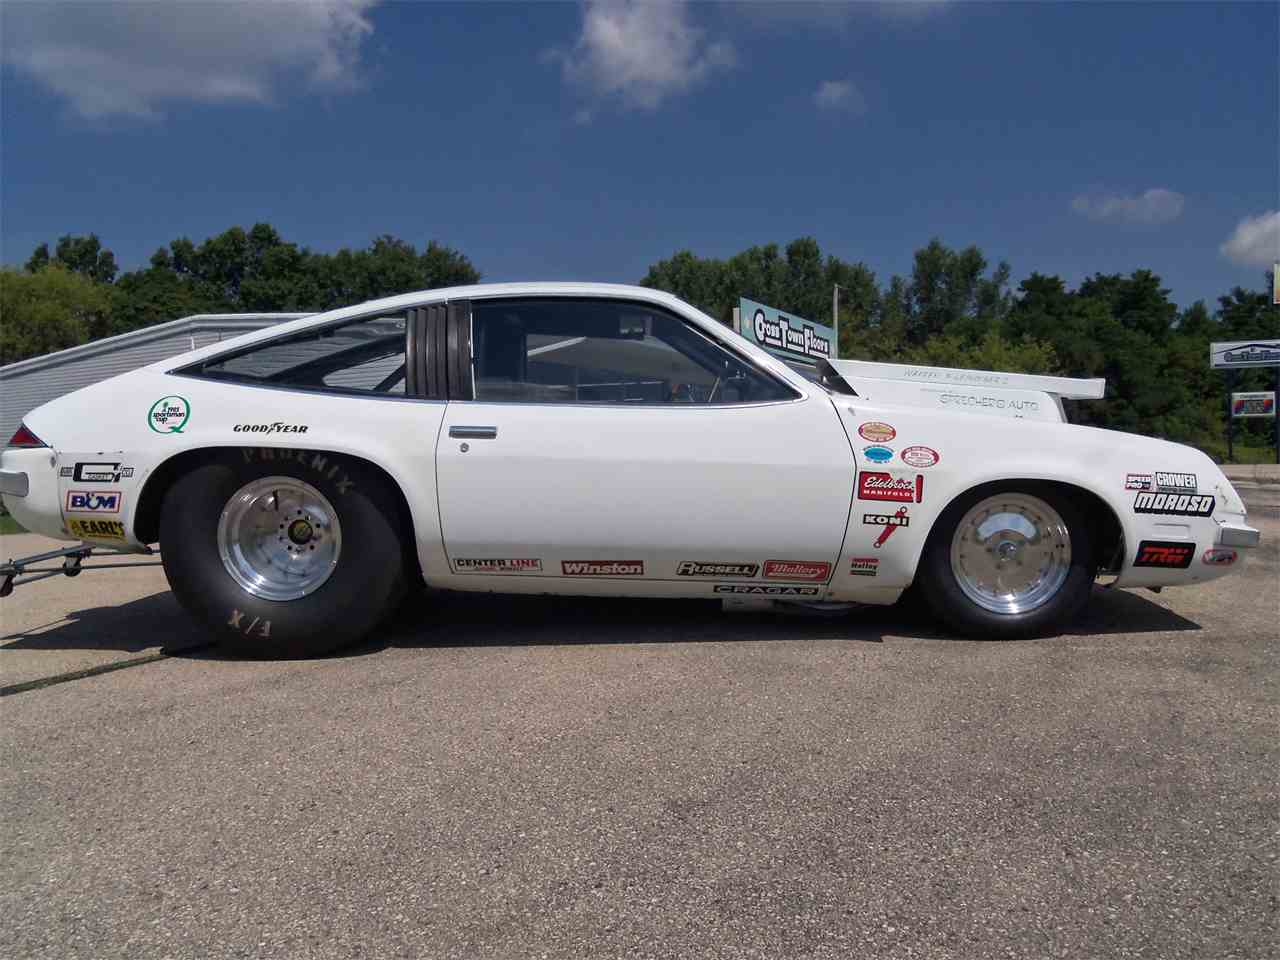 Old Cars For Sale Stock Photos Old Cars For Sale Stock: 1977 Chevrolet Monza Pro Stock Race Car For Sale